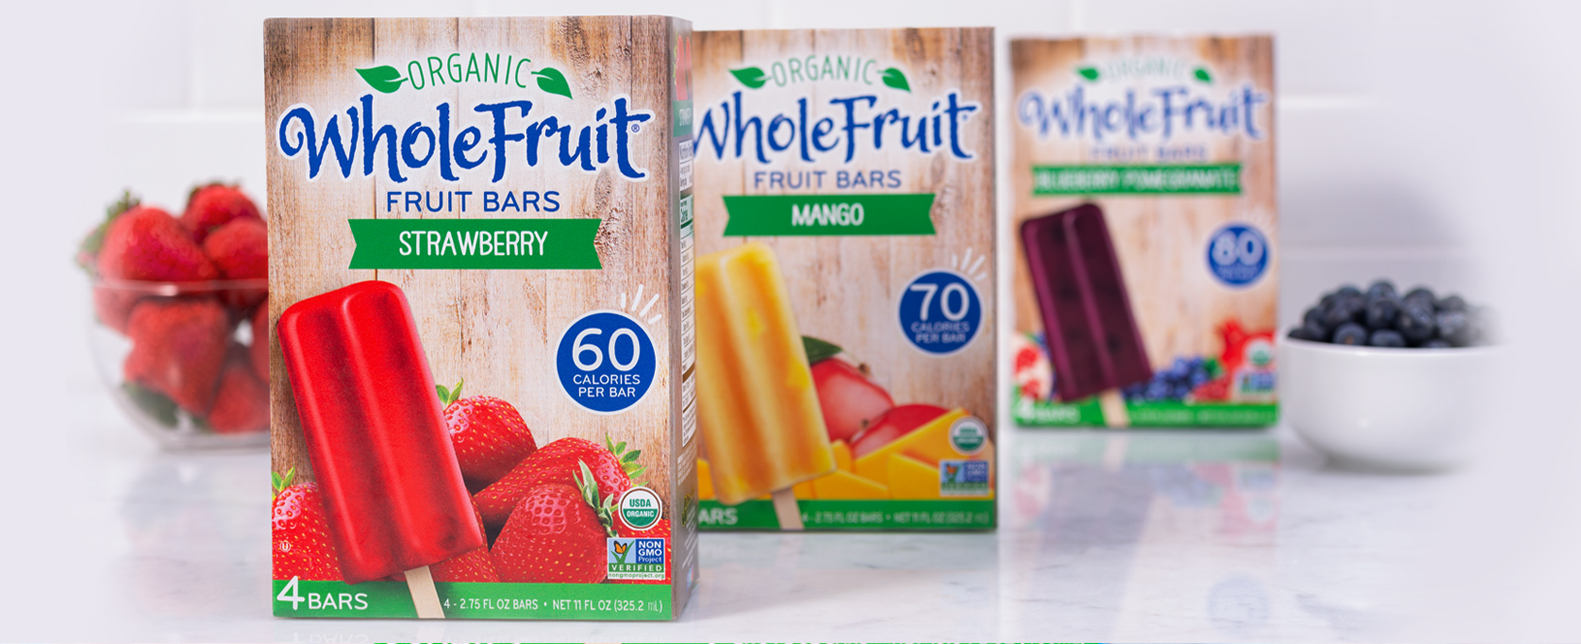 Whole Fruit Organic Fruit Bars